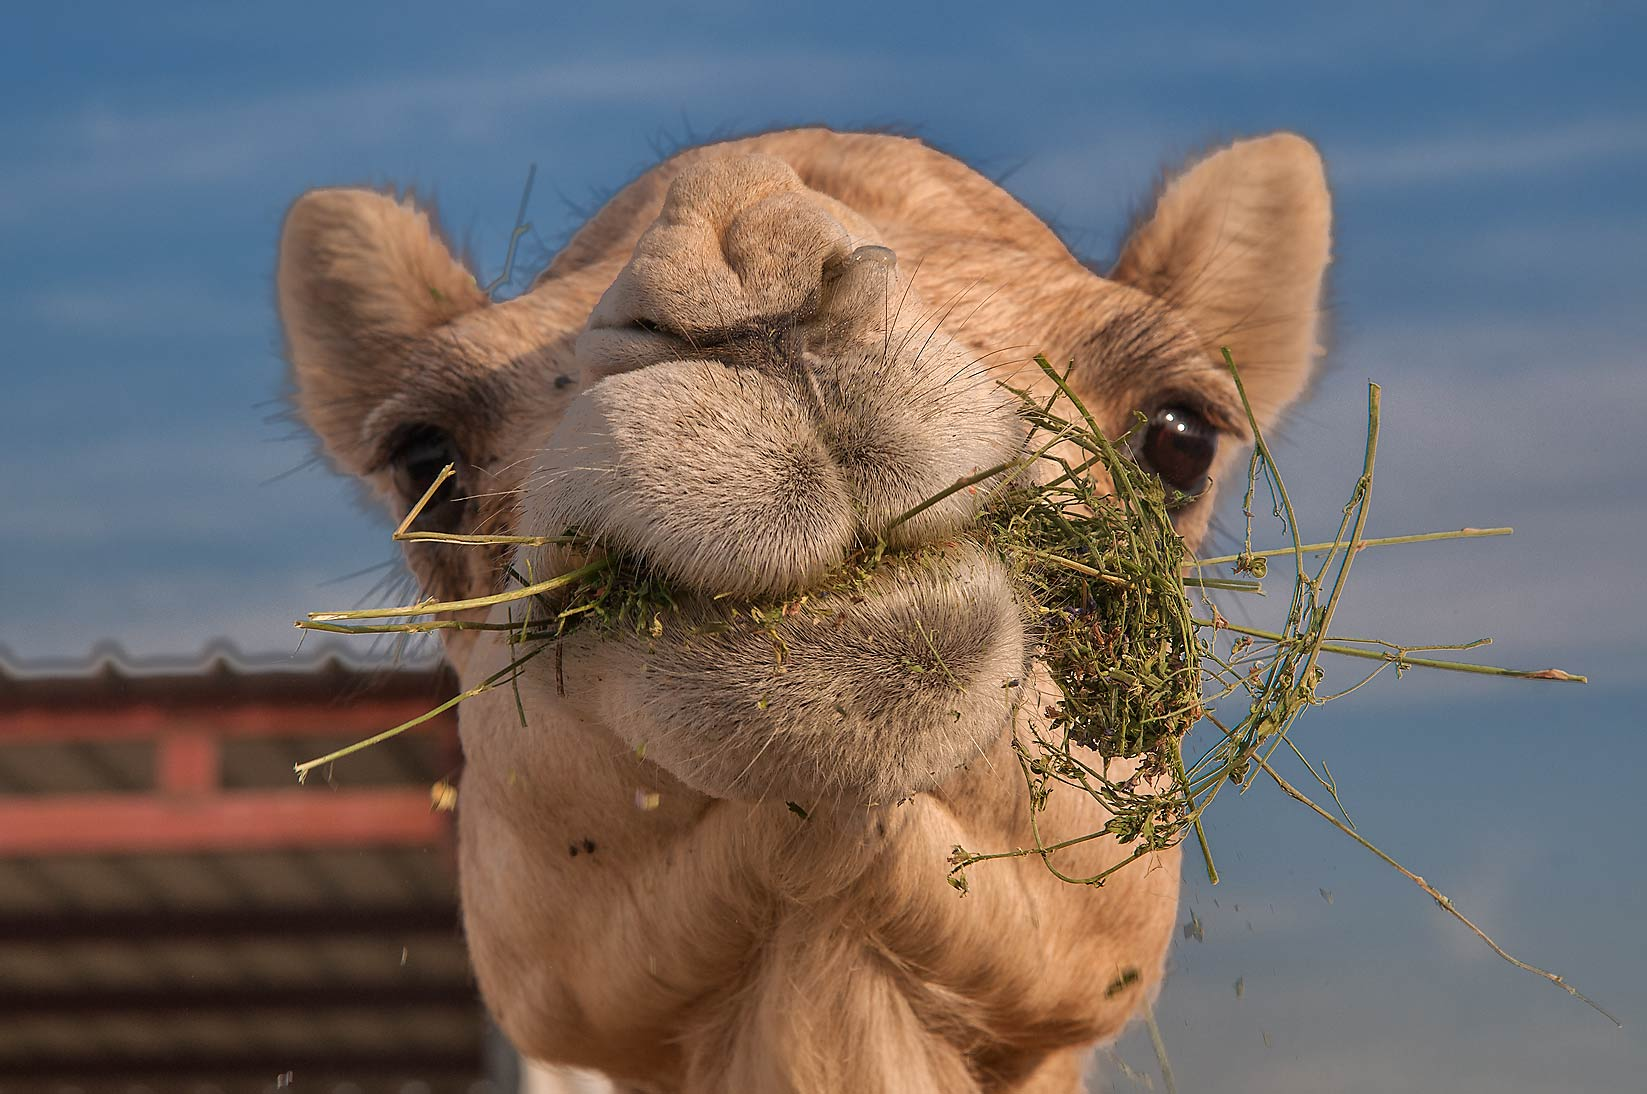 Camel with stalks of hay in Livestock Market, Wholesale Markets area. Doha, Qatar